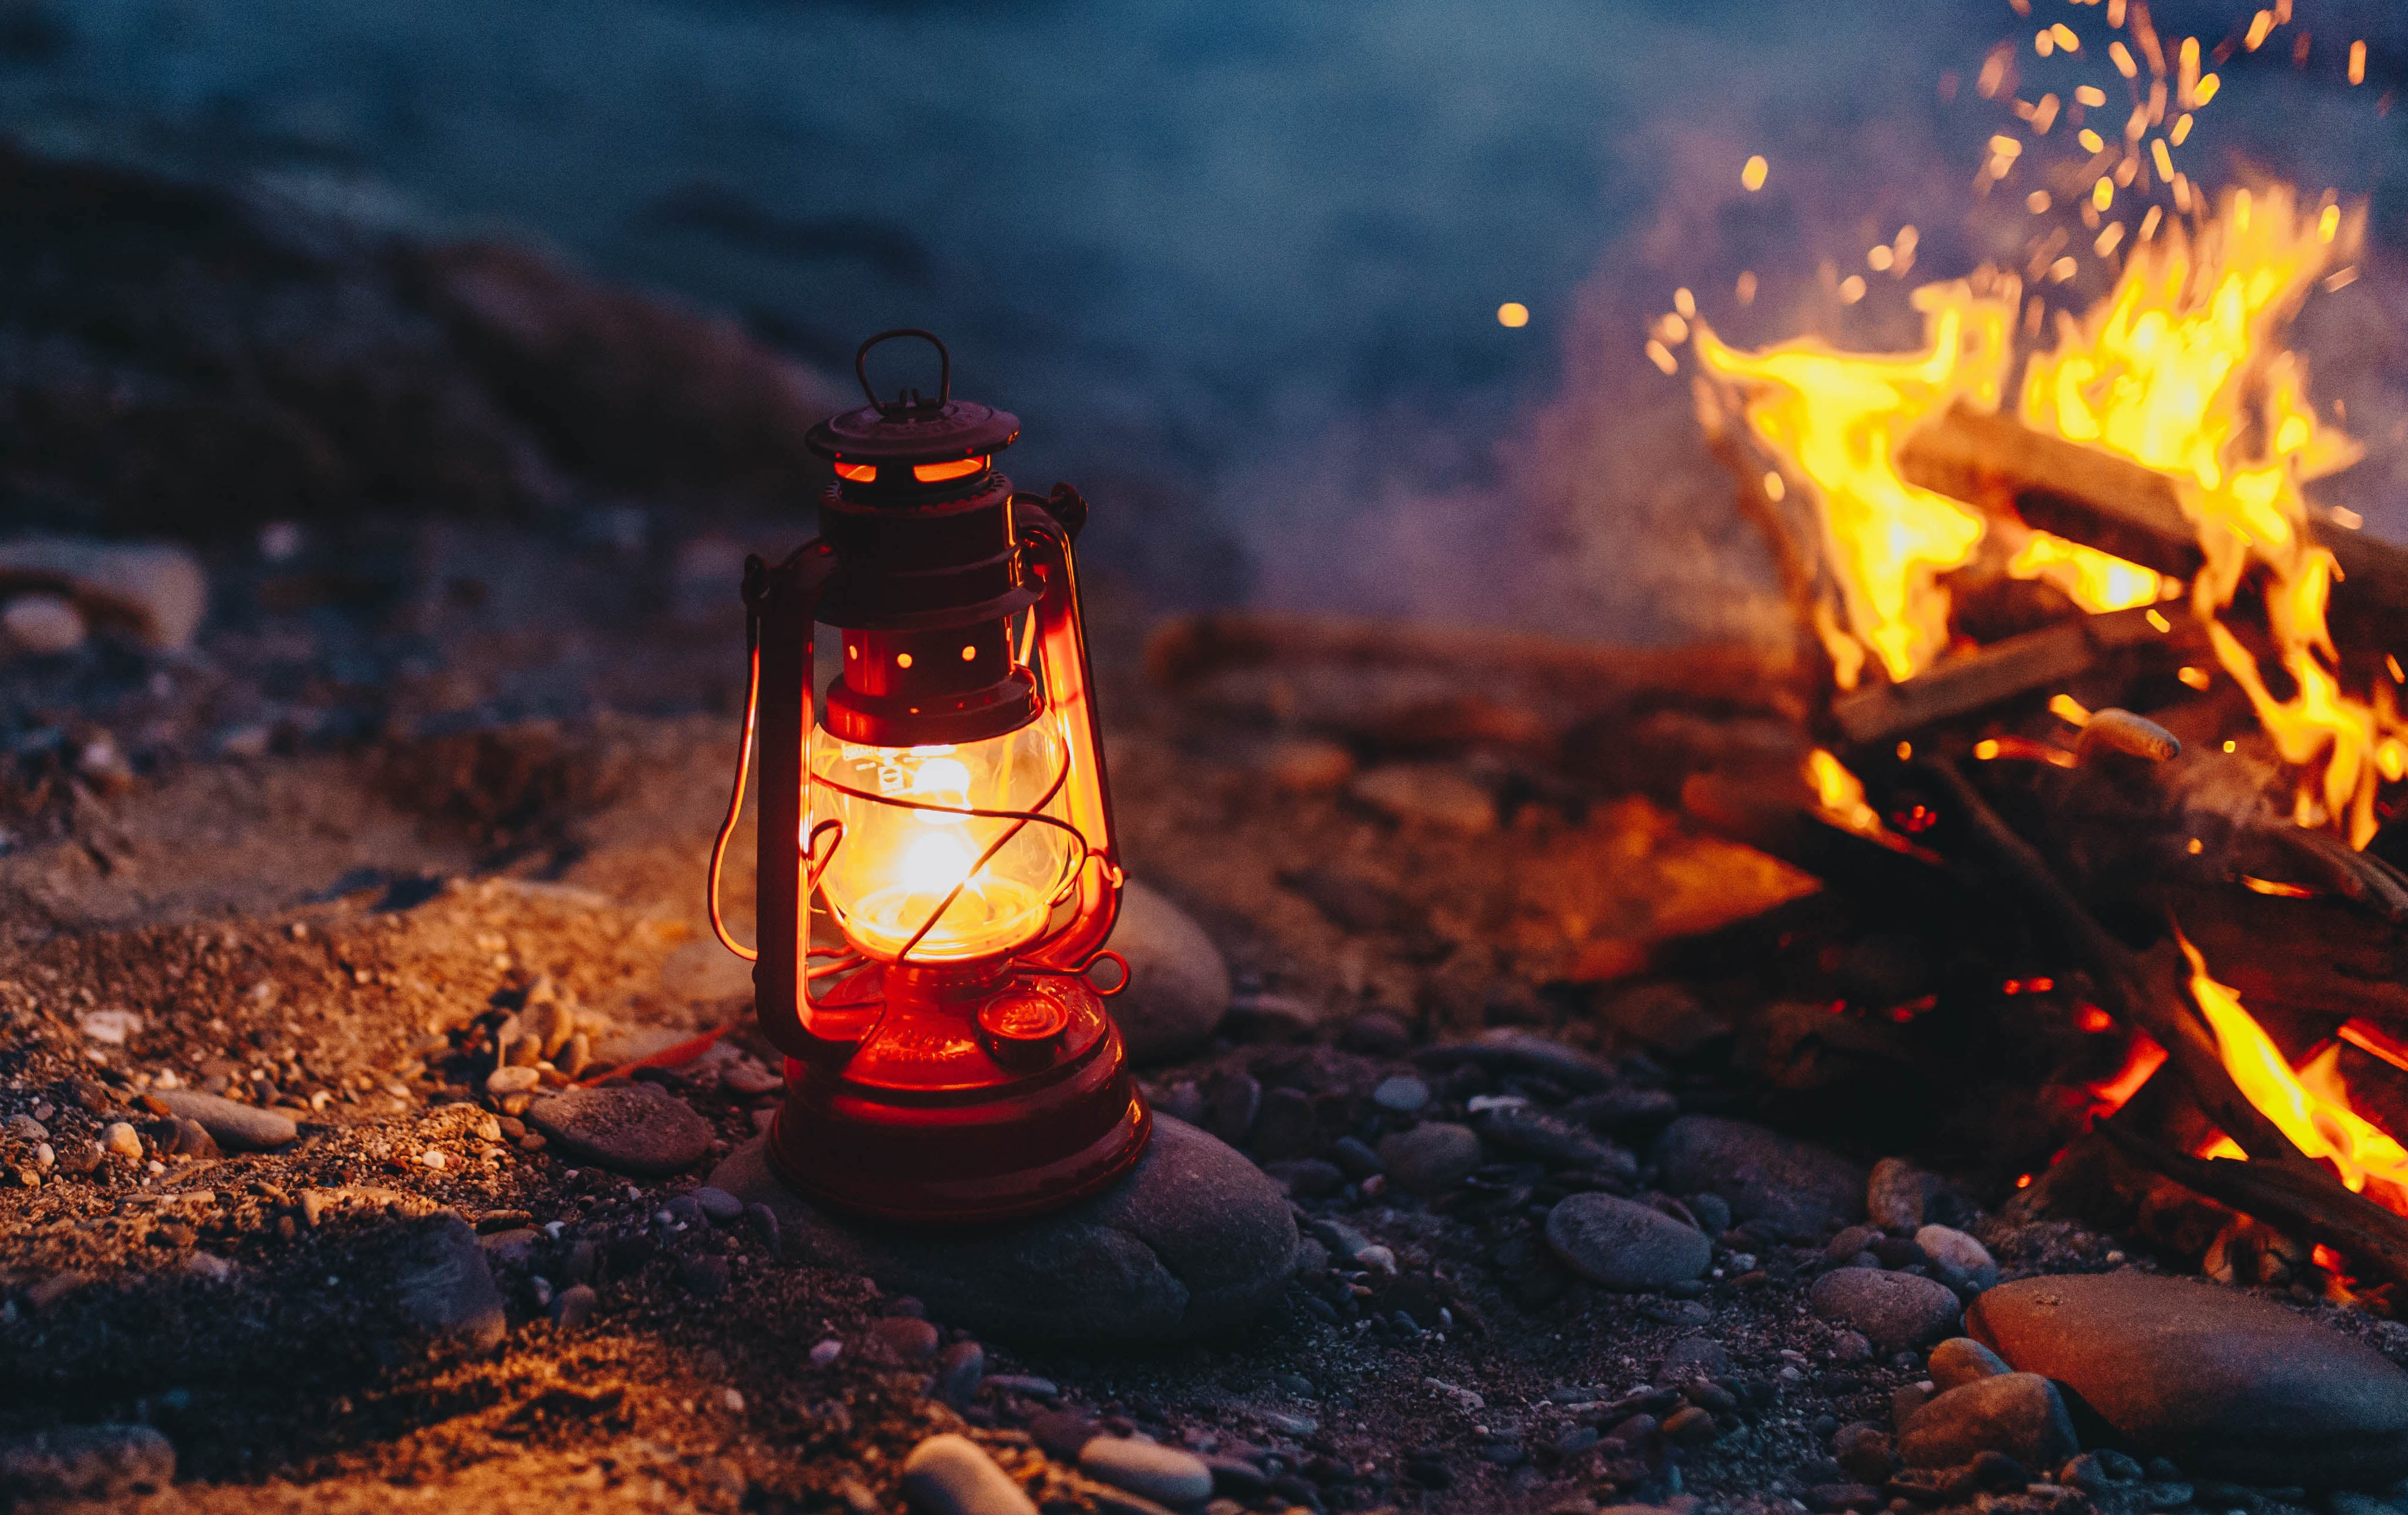 Common Goods Feuerhand Lantern